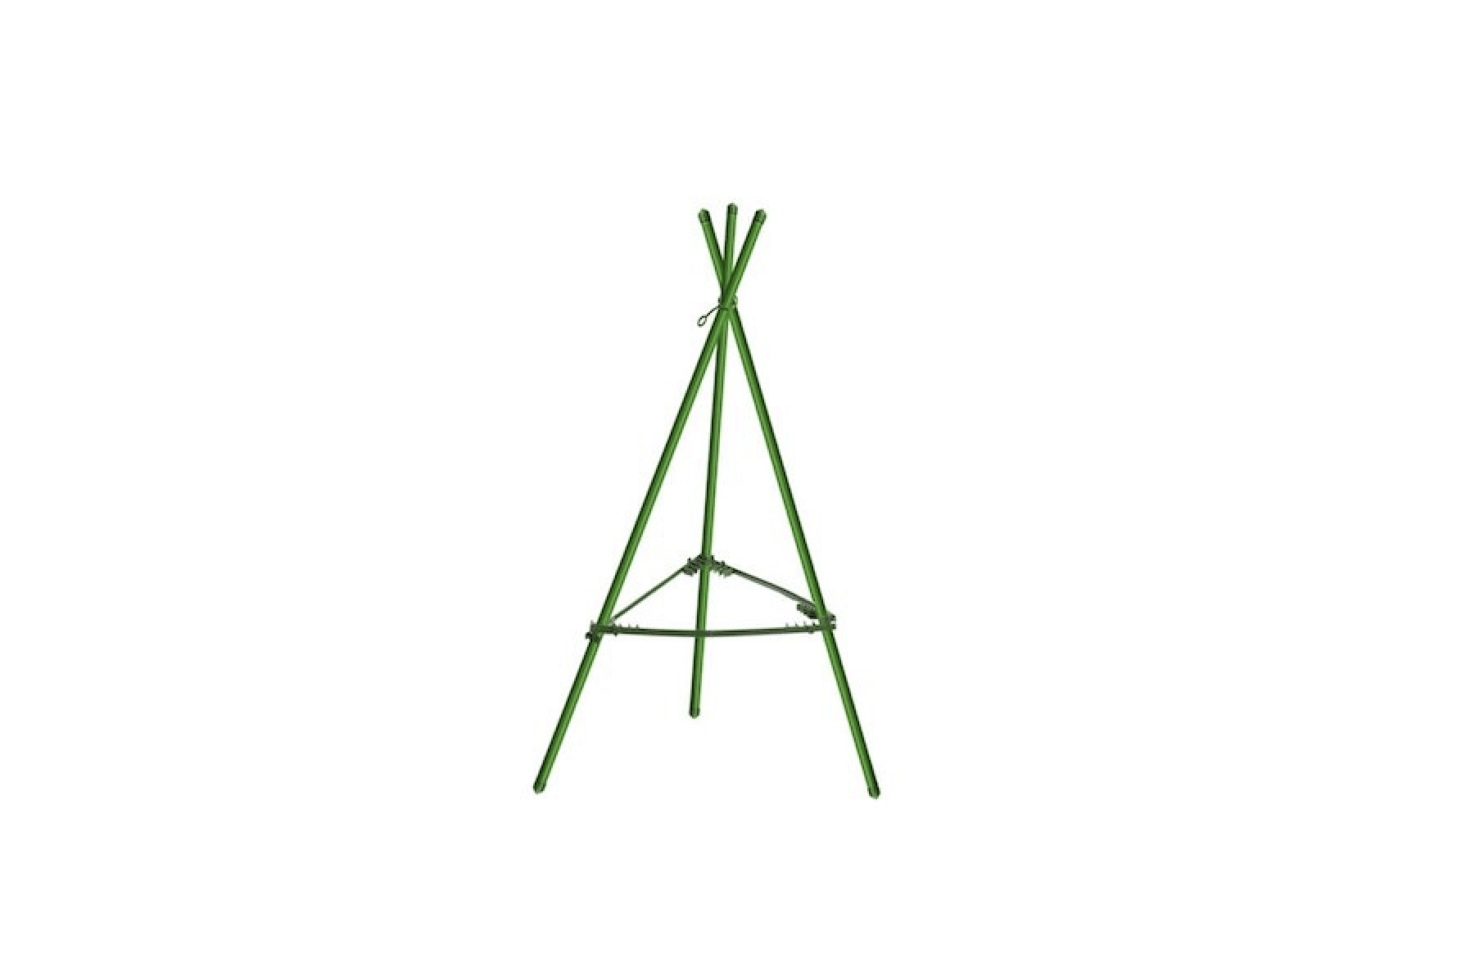 A triangularHeavy Duty Tomato Cage from Mr. Garden has .5-inch rust-resistant steel stakes (making it a suitable support for cherry tomato bushes); $.35 via Amazon.